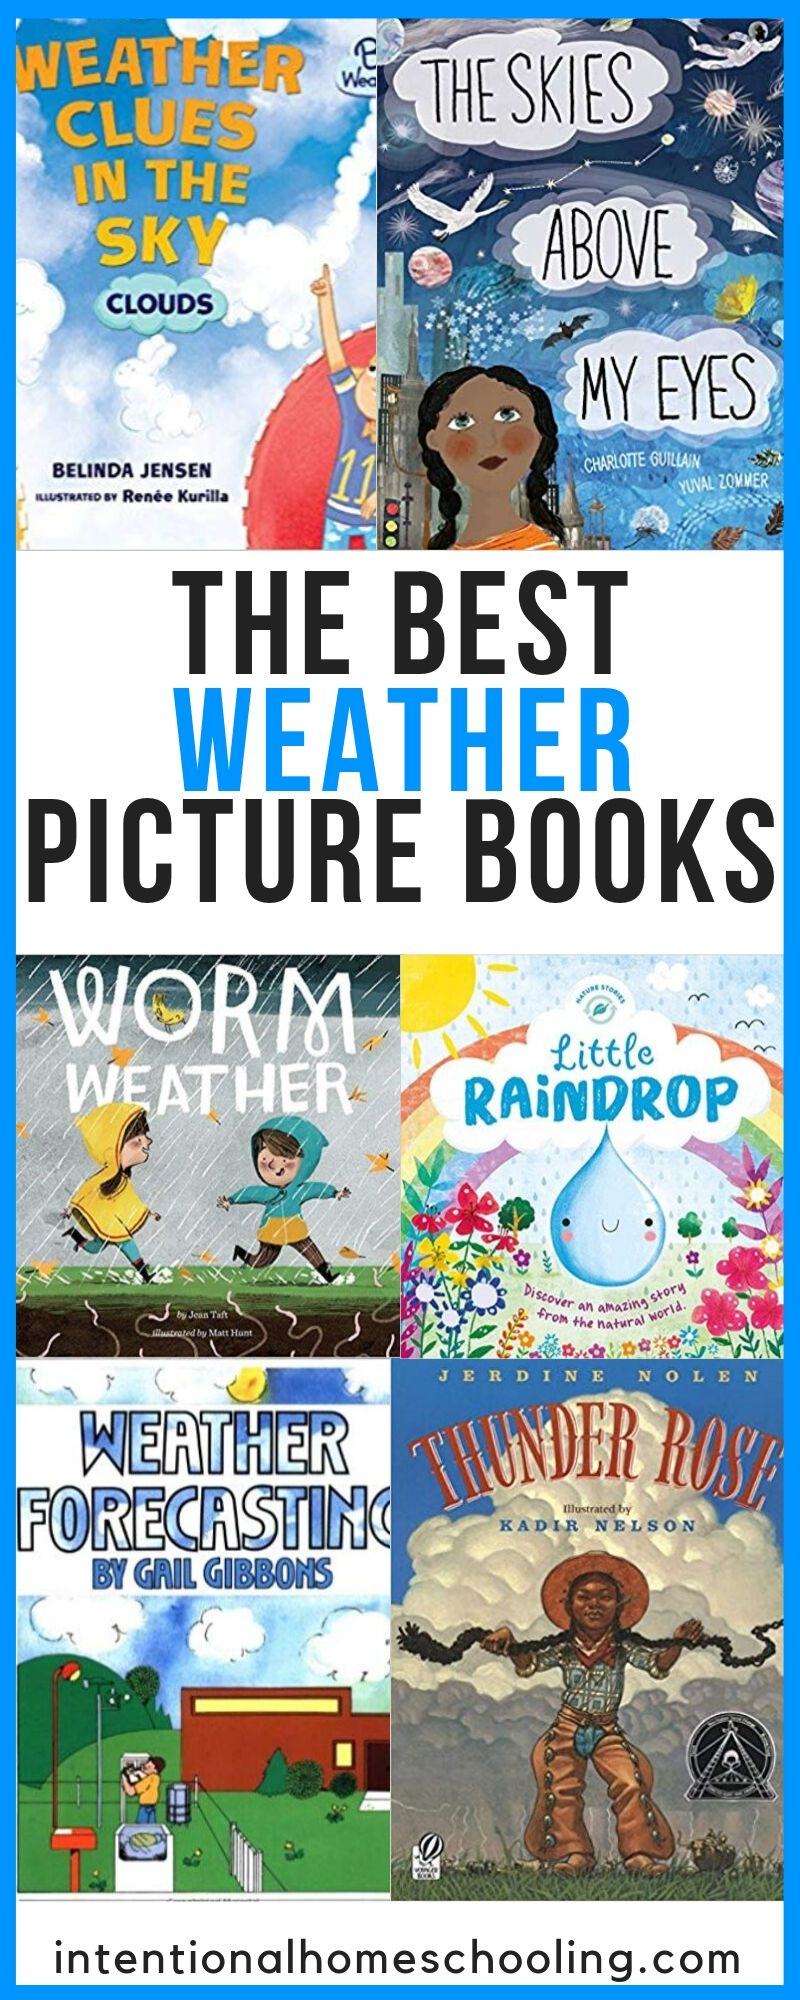 The Best Picture Books About Weather - Fiction and Non-Fiction Picture Books Great for Kids in Elementary